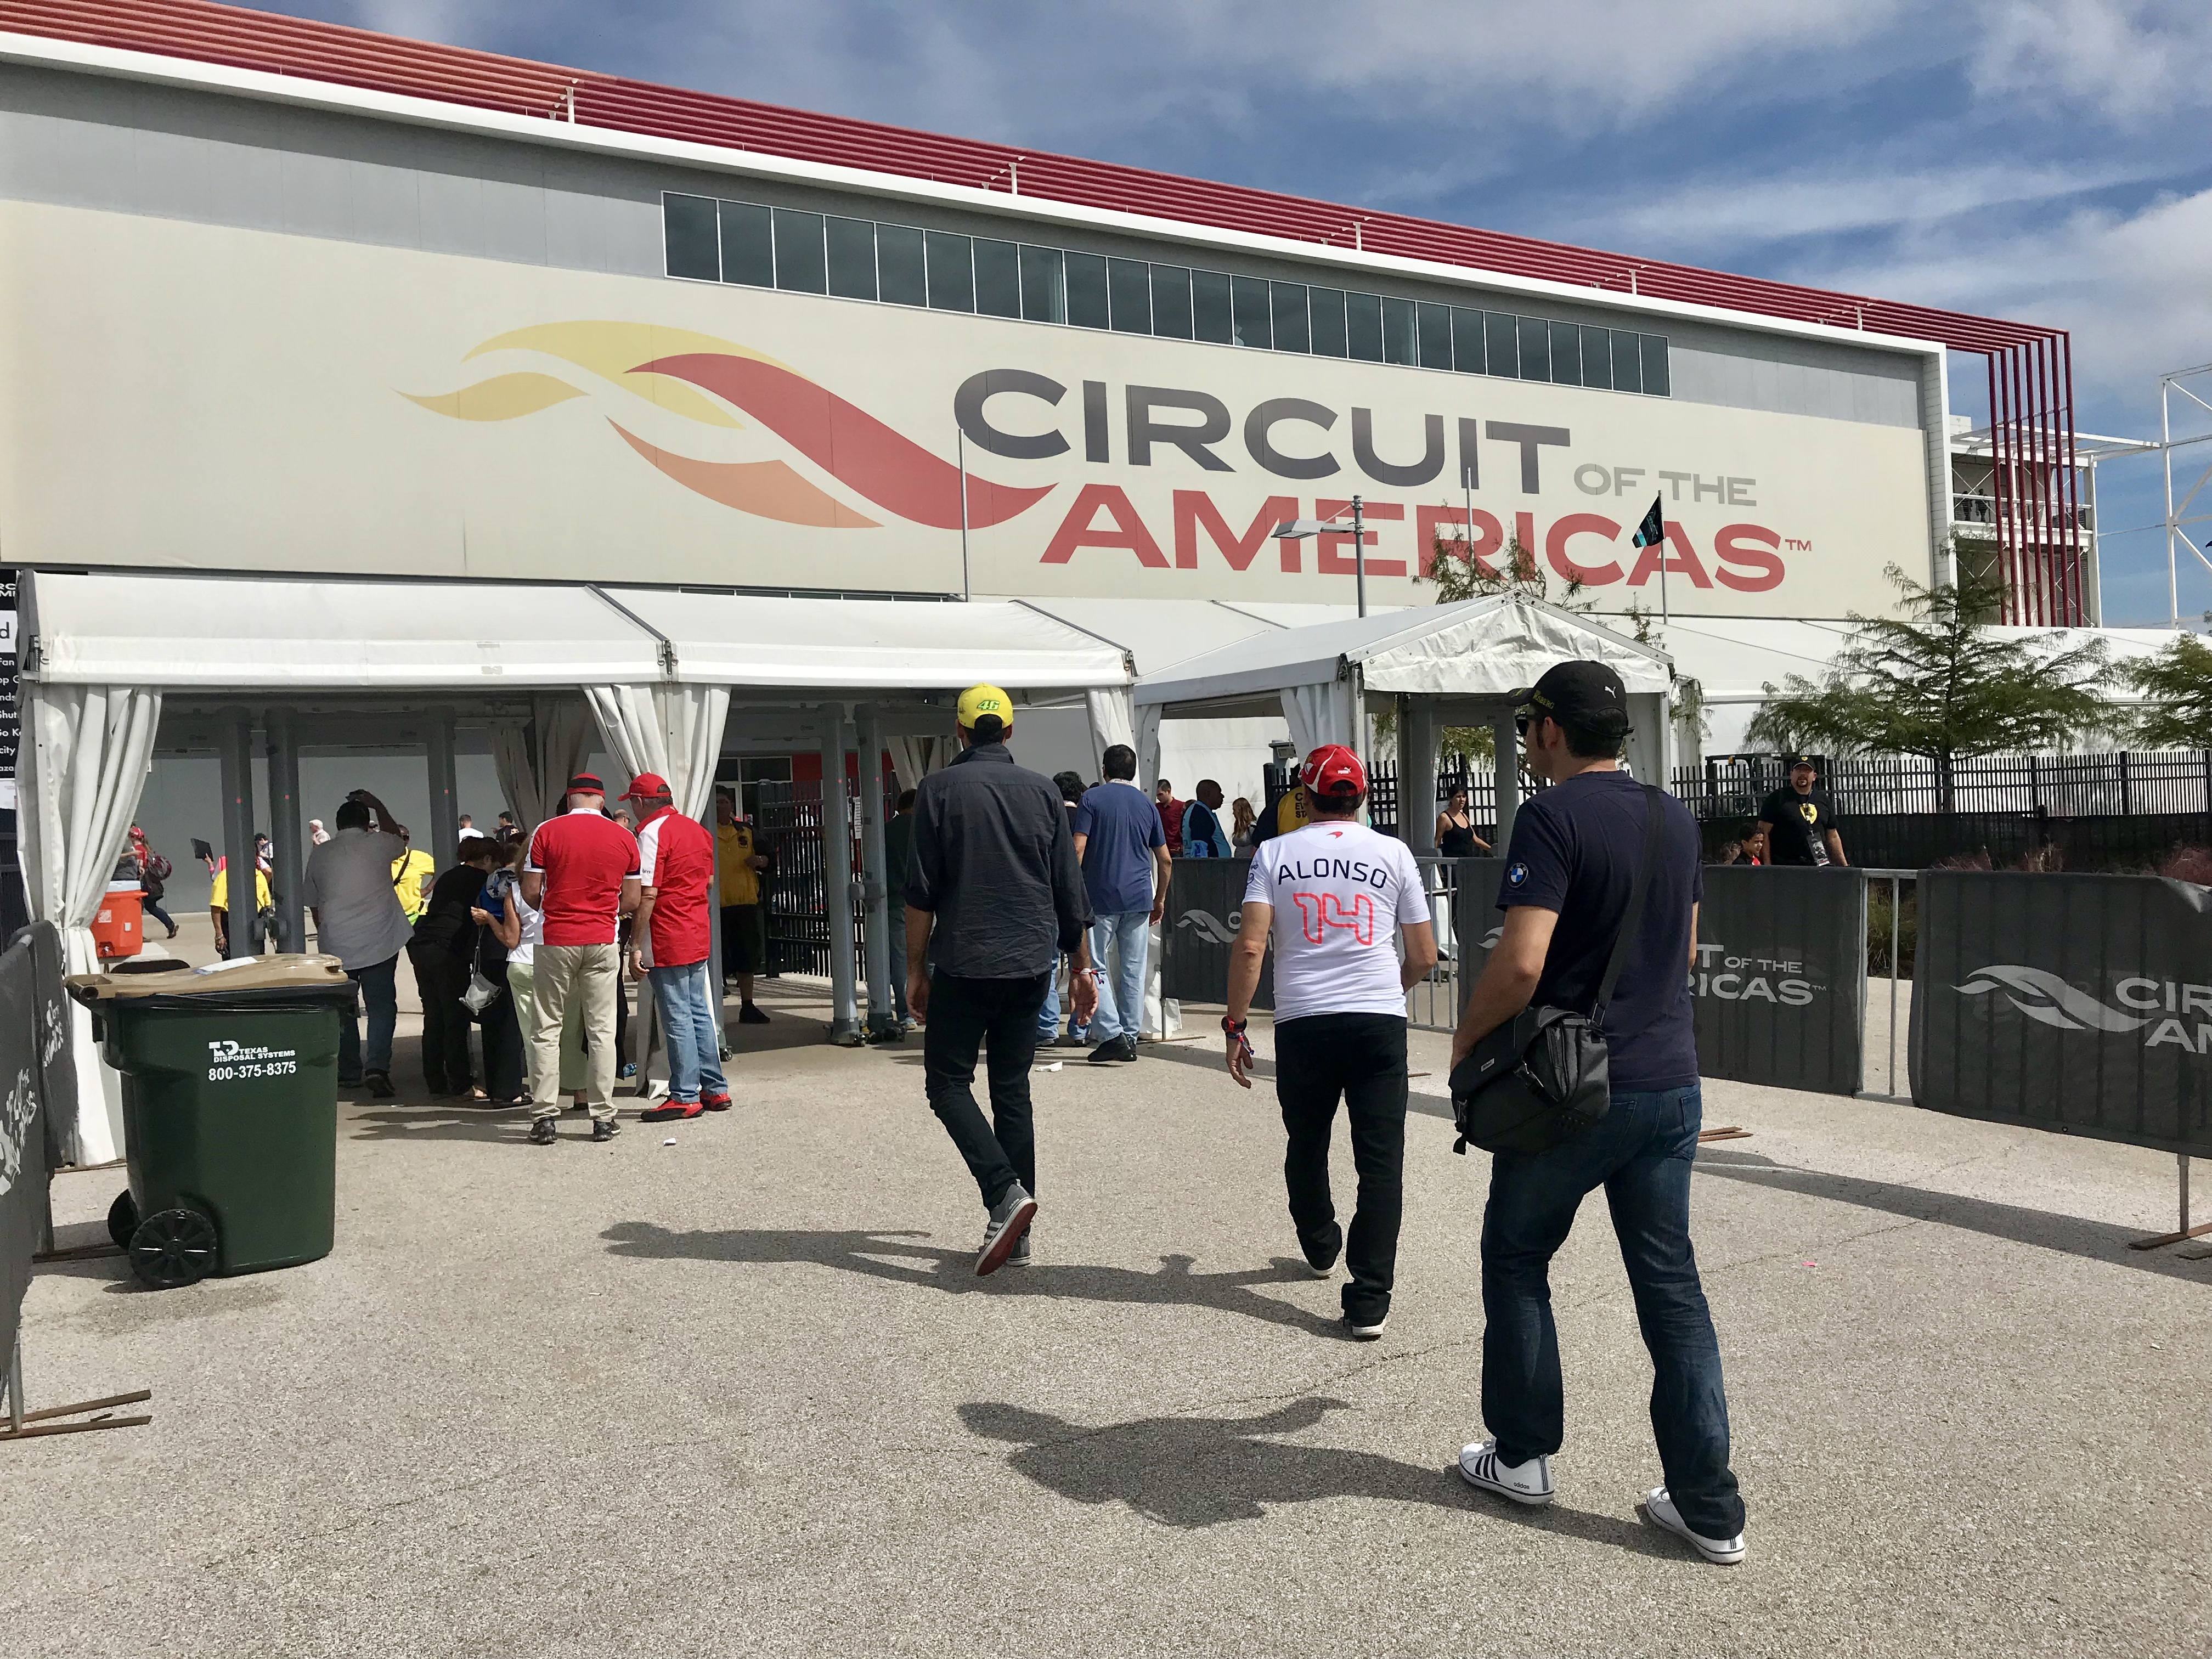 Circuit of the Americas hosts the US Grand Prix for the sixth year. (Photo:Bettie Cross)